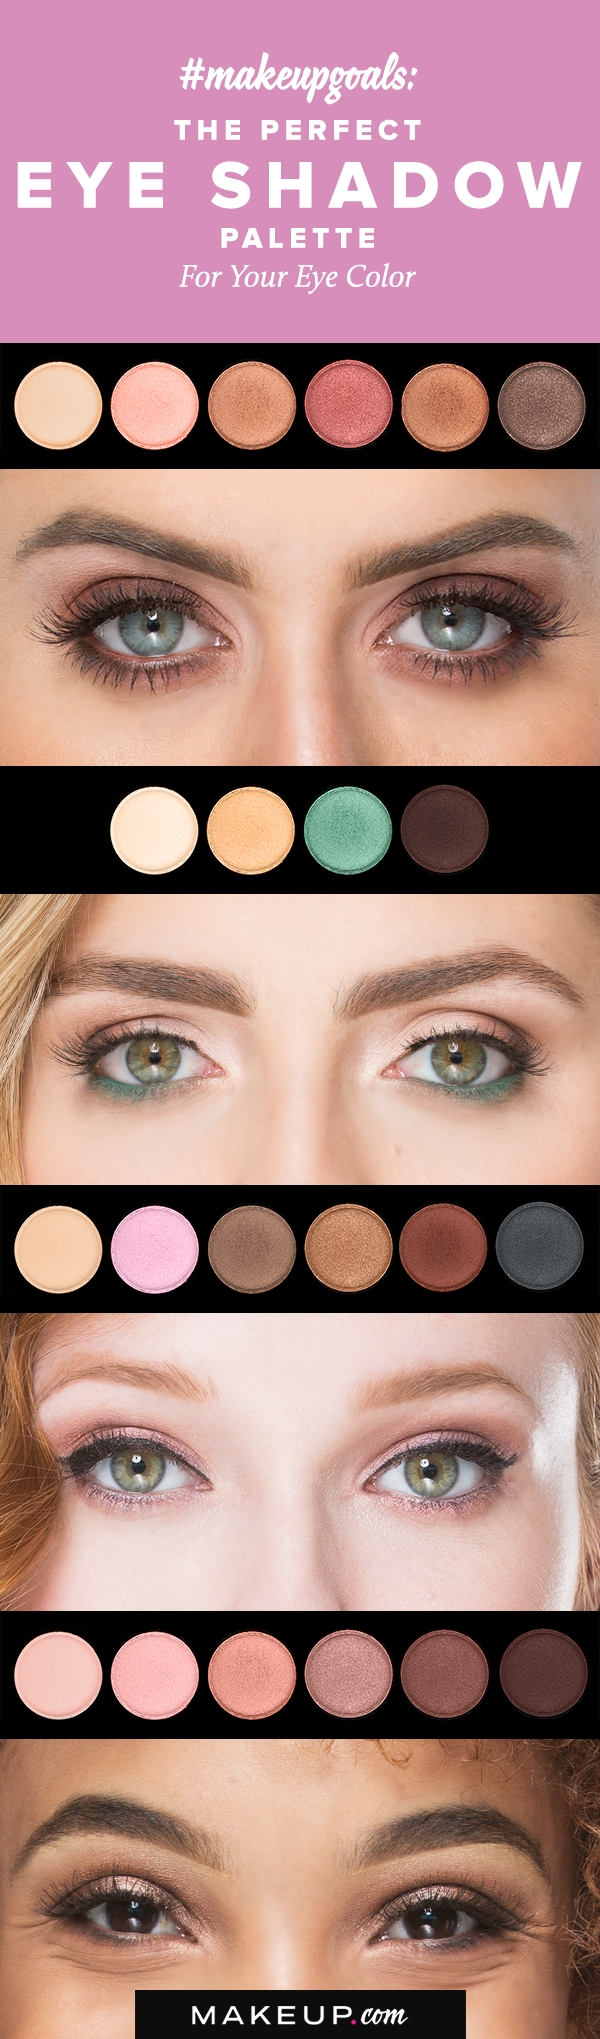 The Best Eyeshadow Palette For Your Eye Color | Eye Makeup with regard to Best Eyeshadow Palettes For Hazel Green Eyes